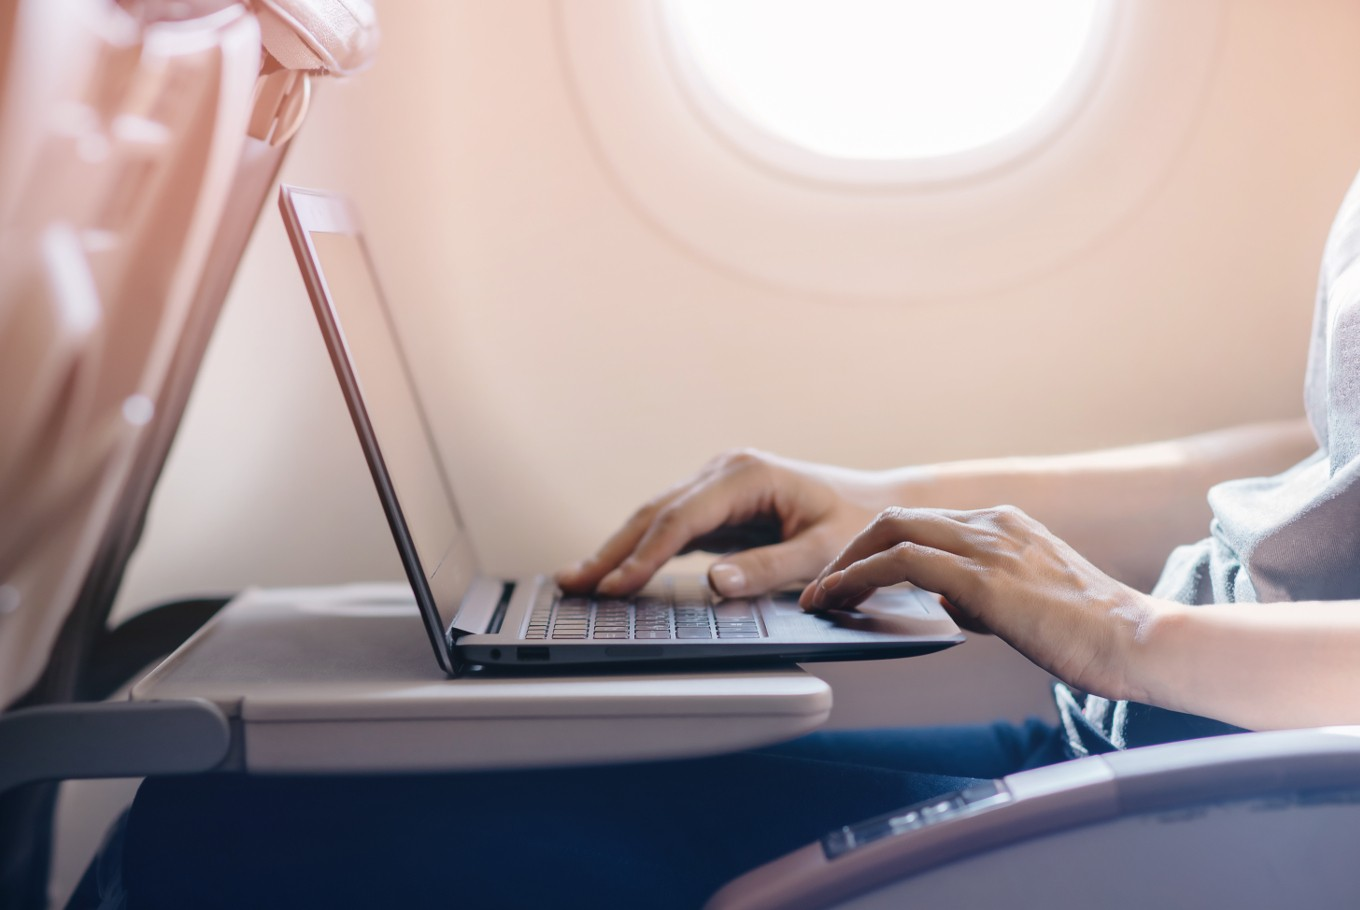 Qatar Airways to loan laptops to passengers